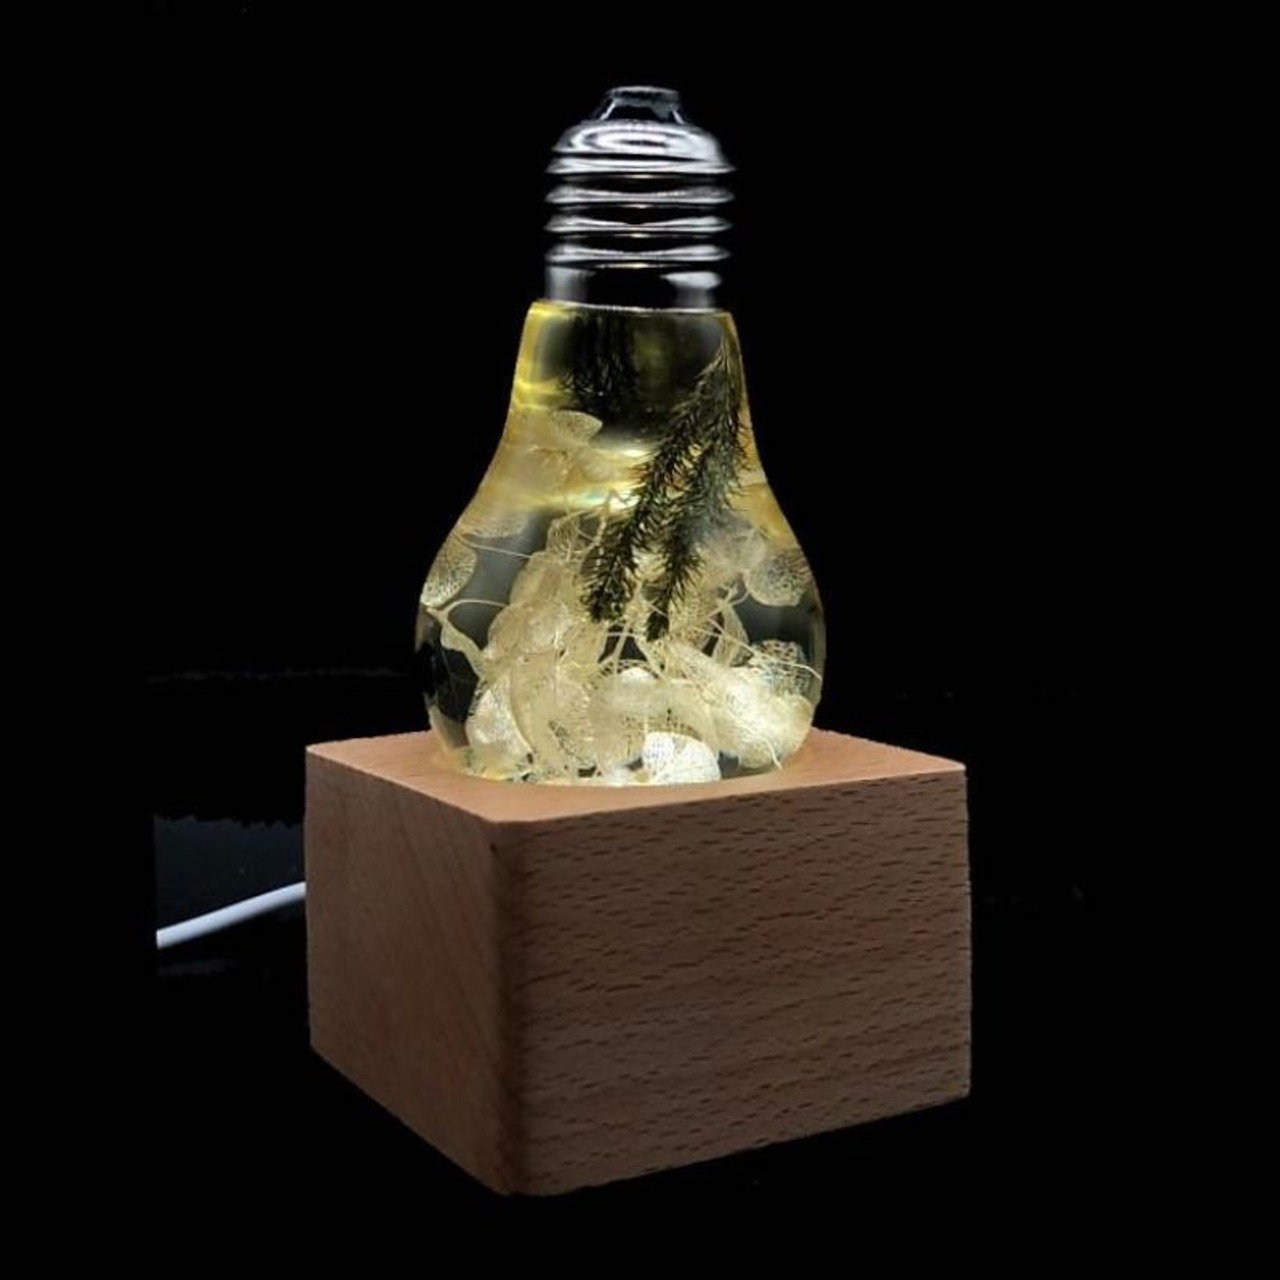 EP Light Yellow Hydrangea Flower Bulb Art Fixture Lamp with Optional Modern or Vintage Base Stand